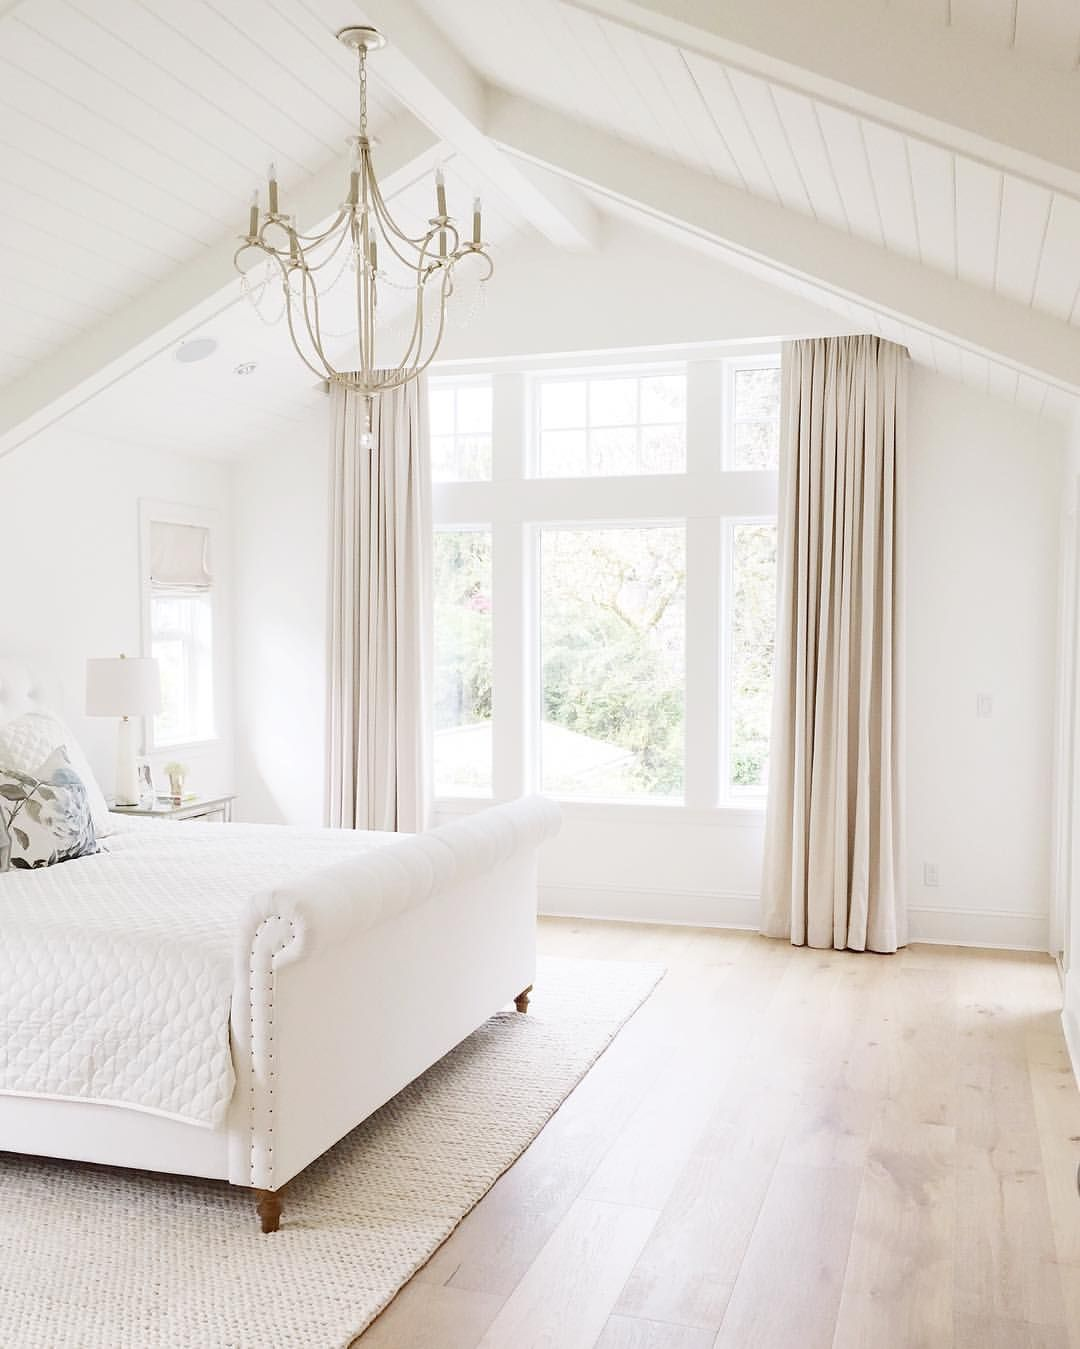 Bedroom Vaulted Ceiling Chandelier Hardwood Floors. Home